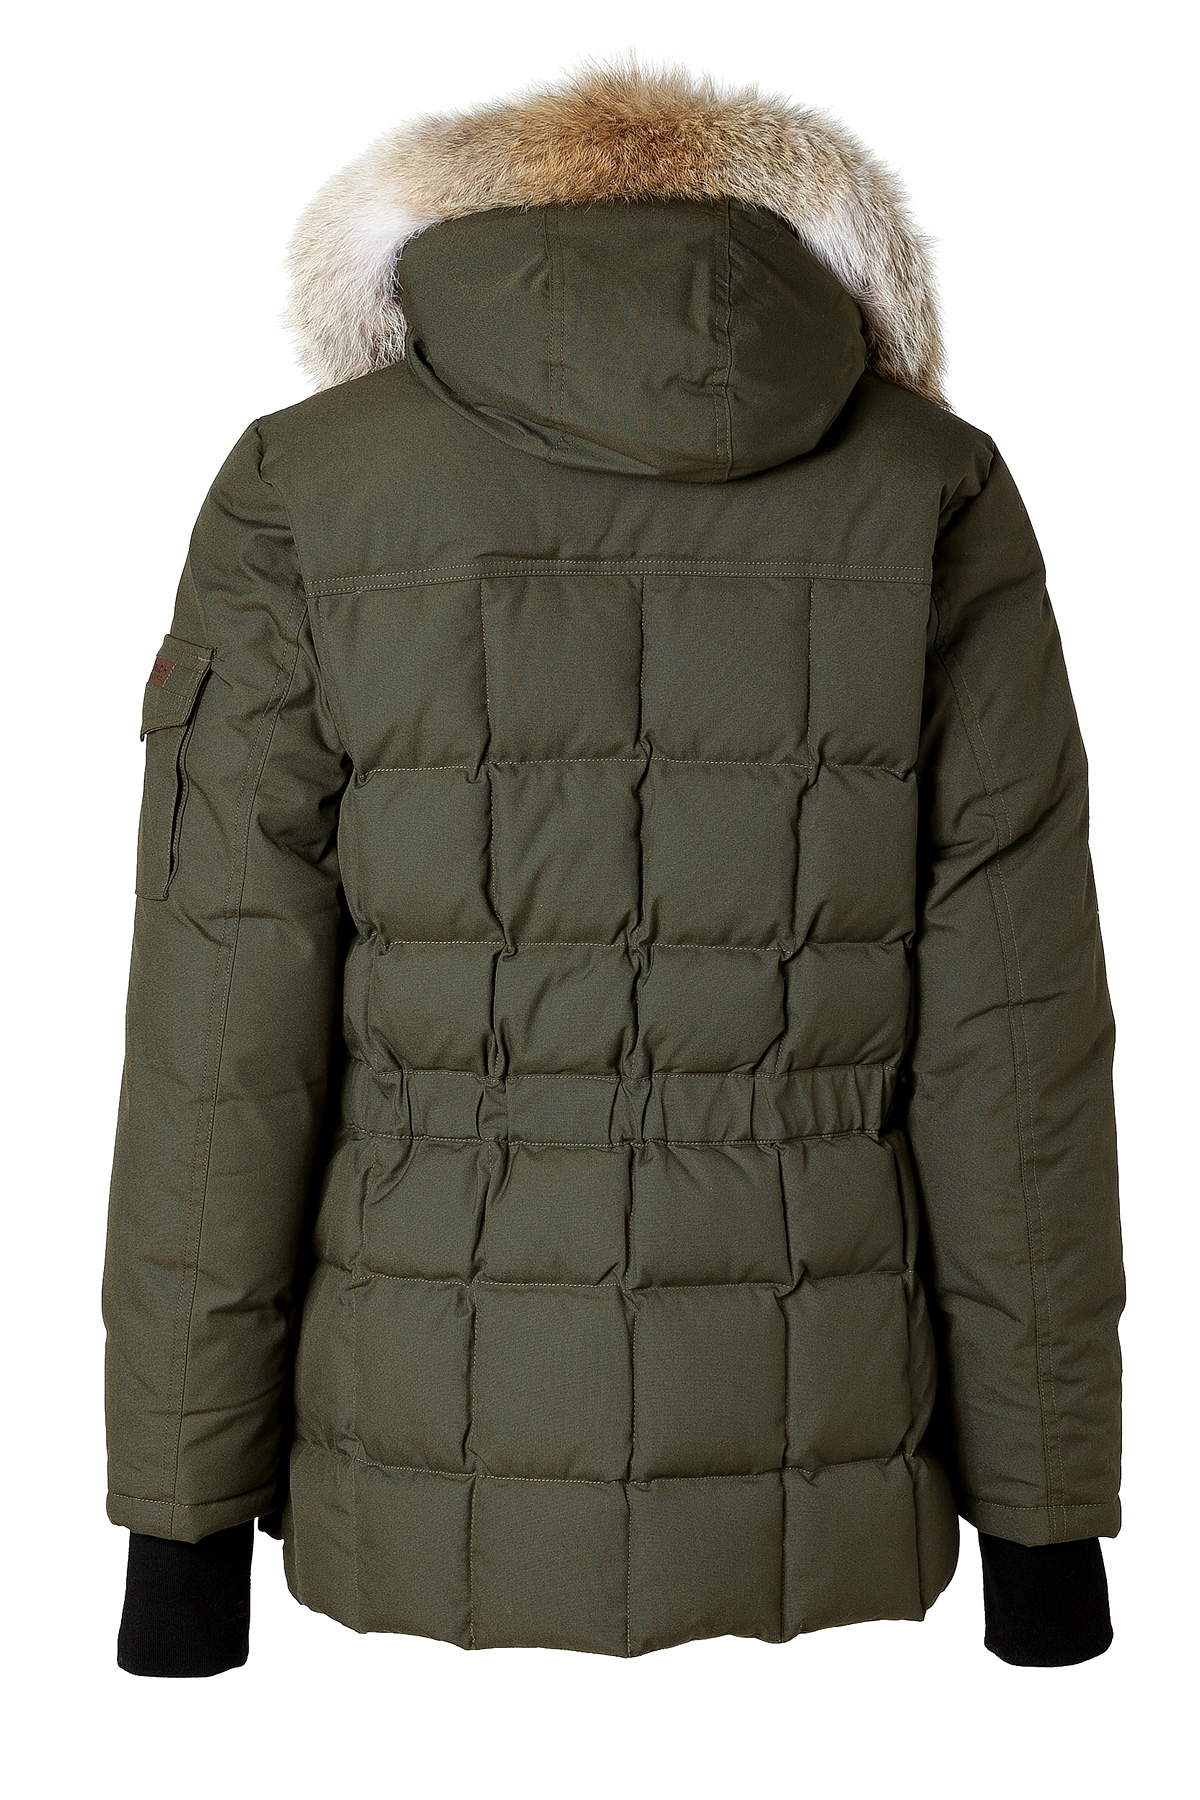 woolrich teton blizzard parka in flint olive in green for men lyst. Black Bedroom Furniture Sets. Home Design Ideas